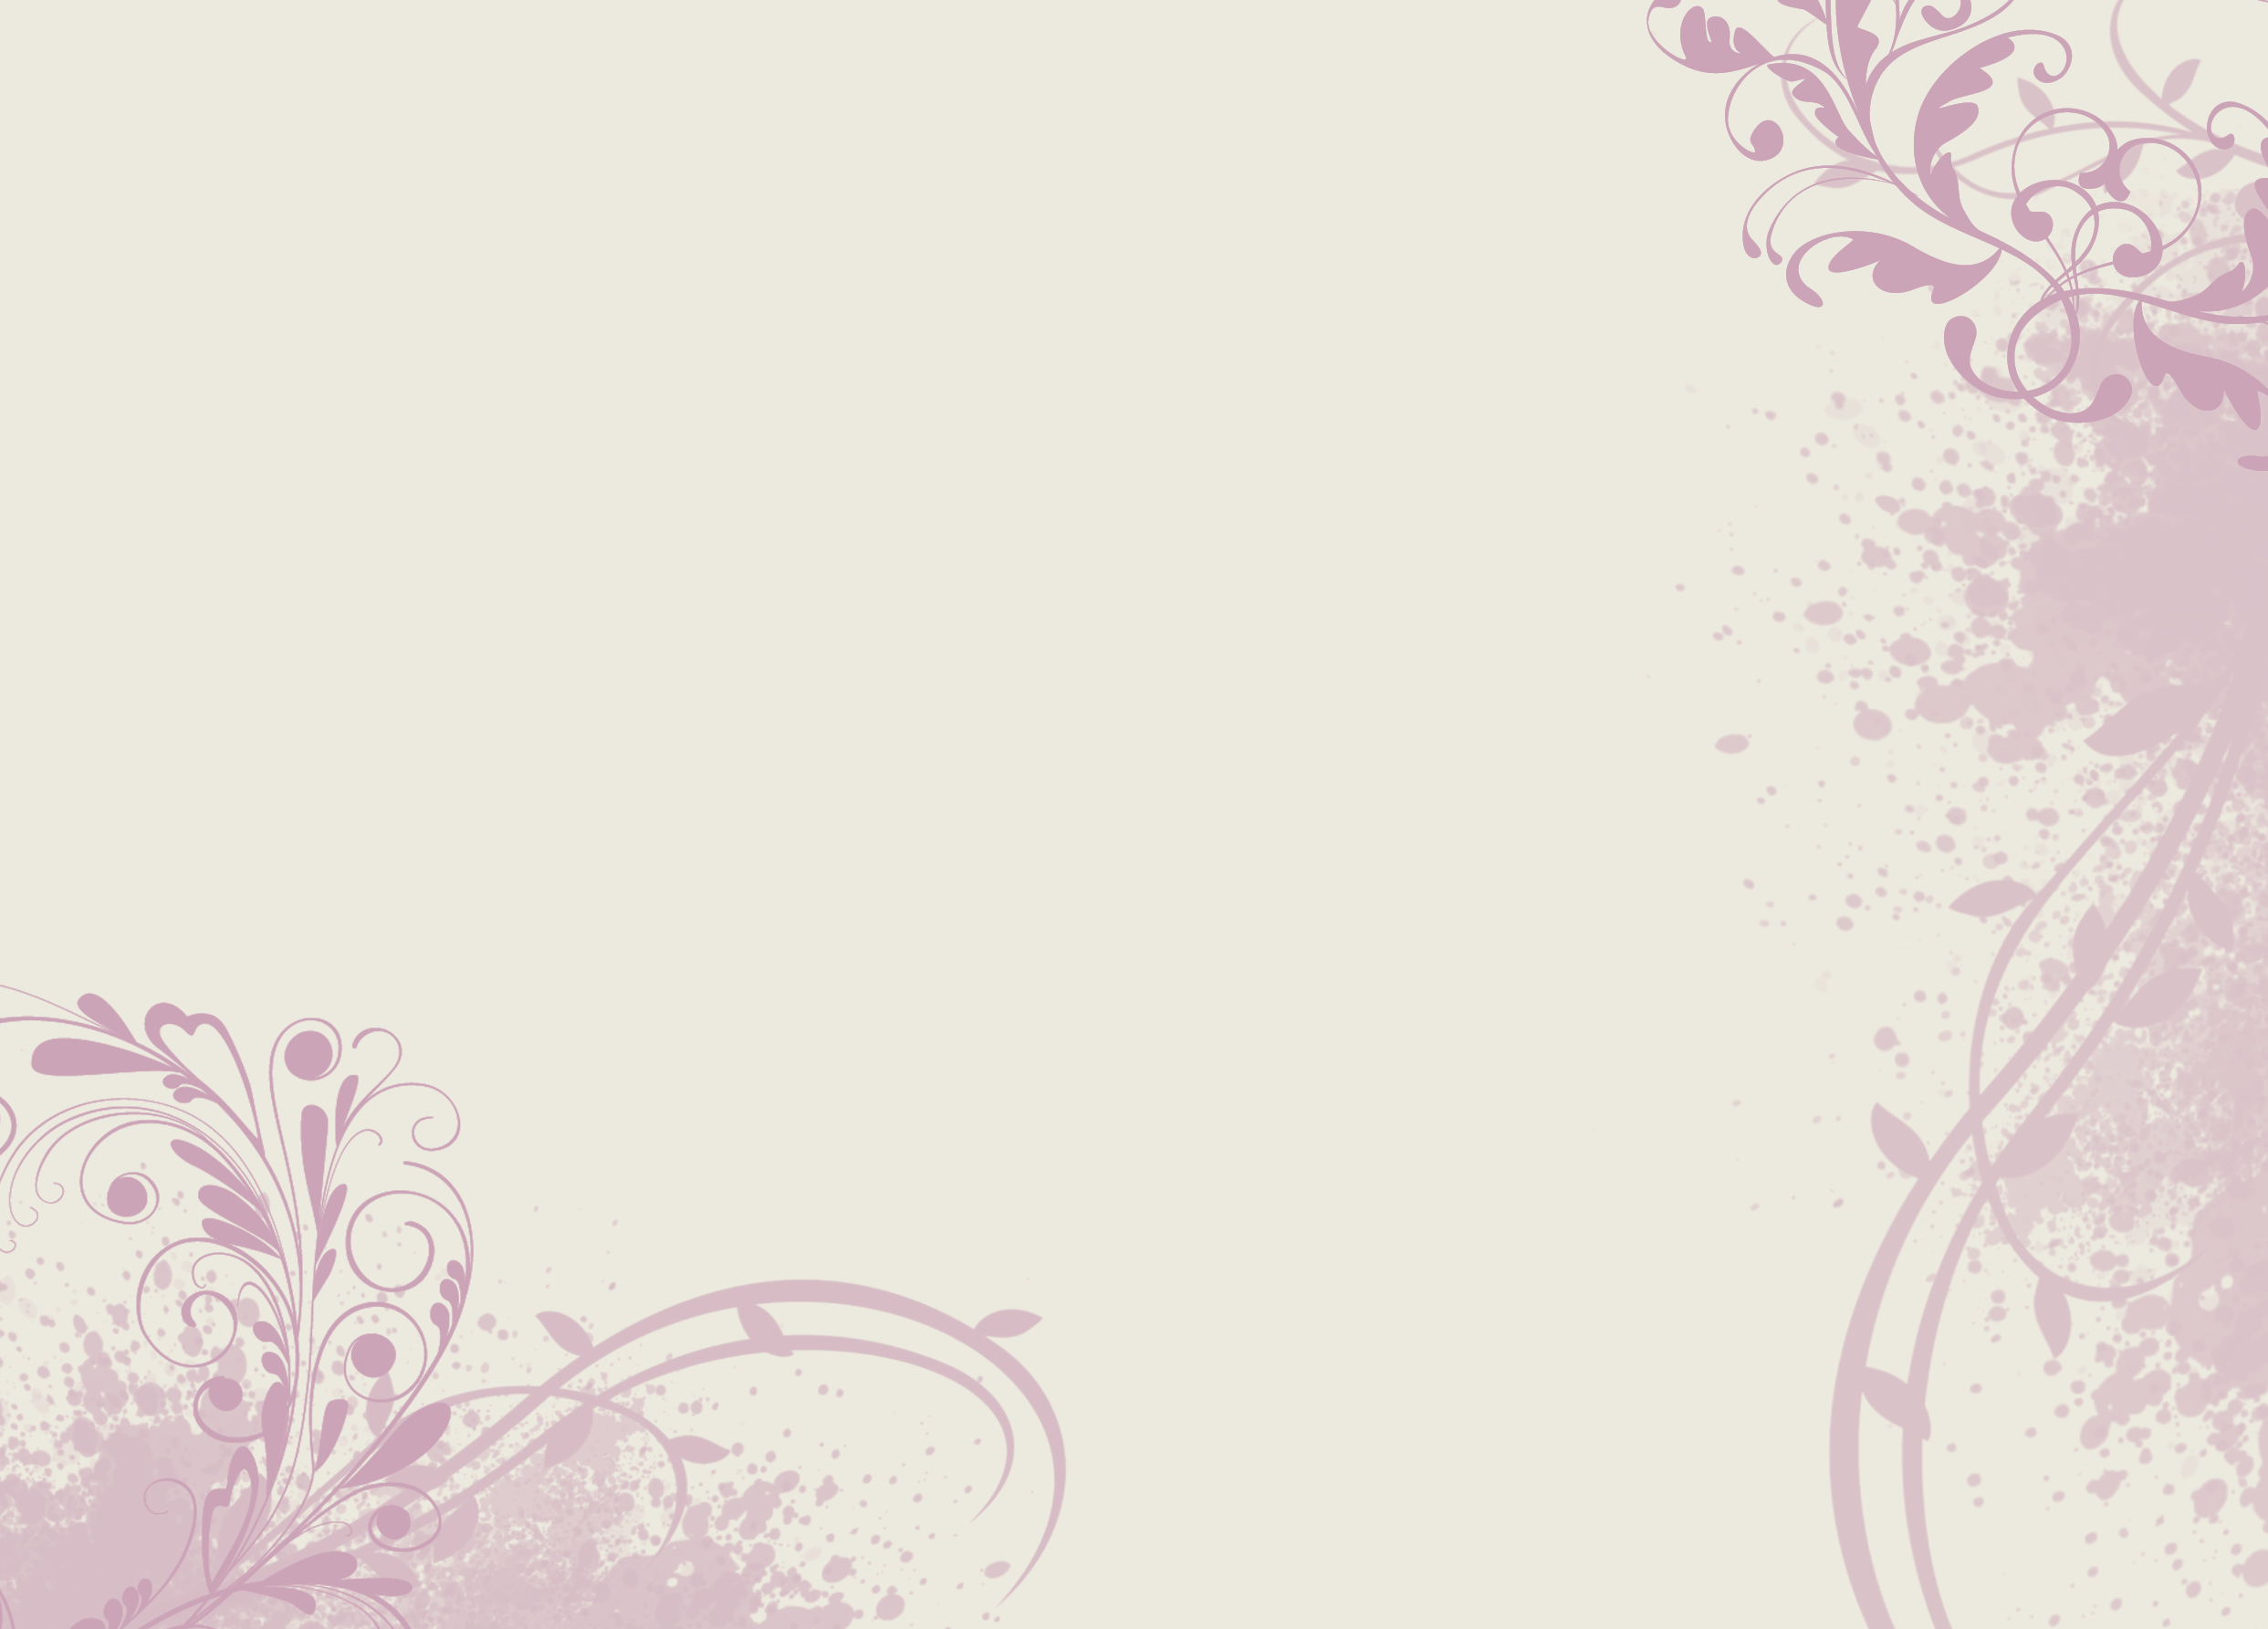 Free Wedding Invitation Background Designs: Pin By Kitty Cat On Invitation Background